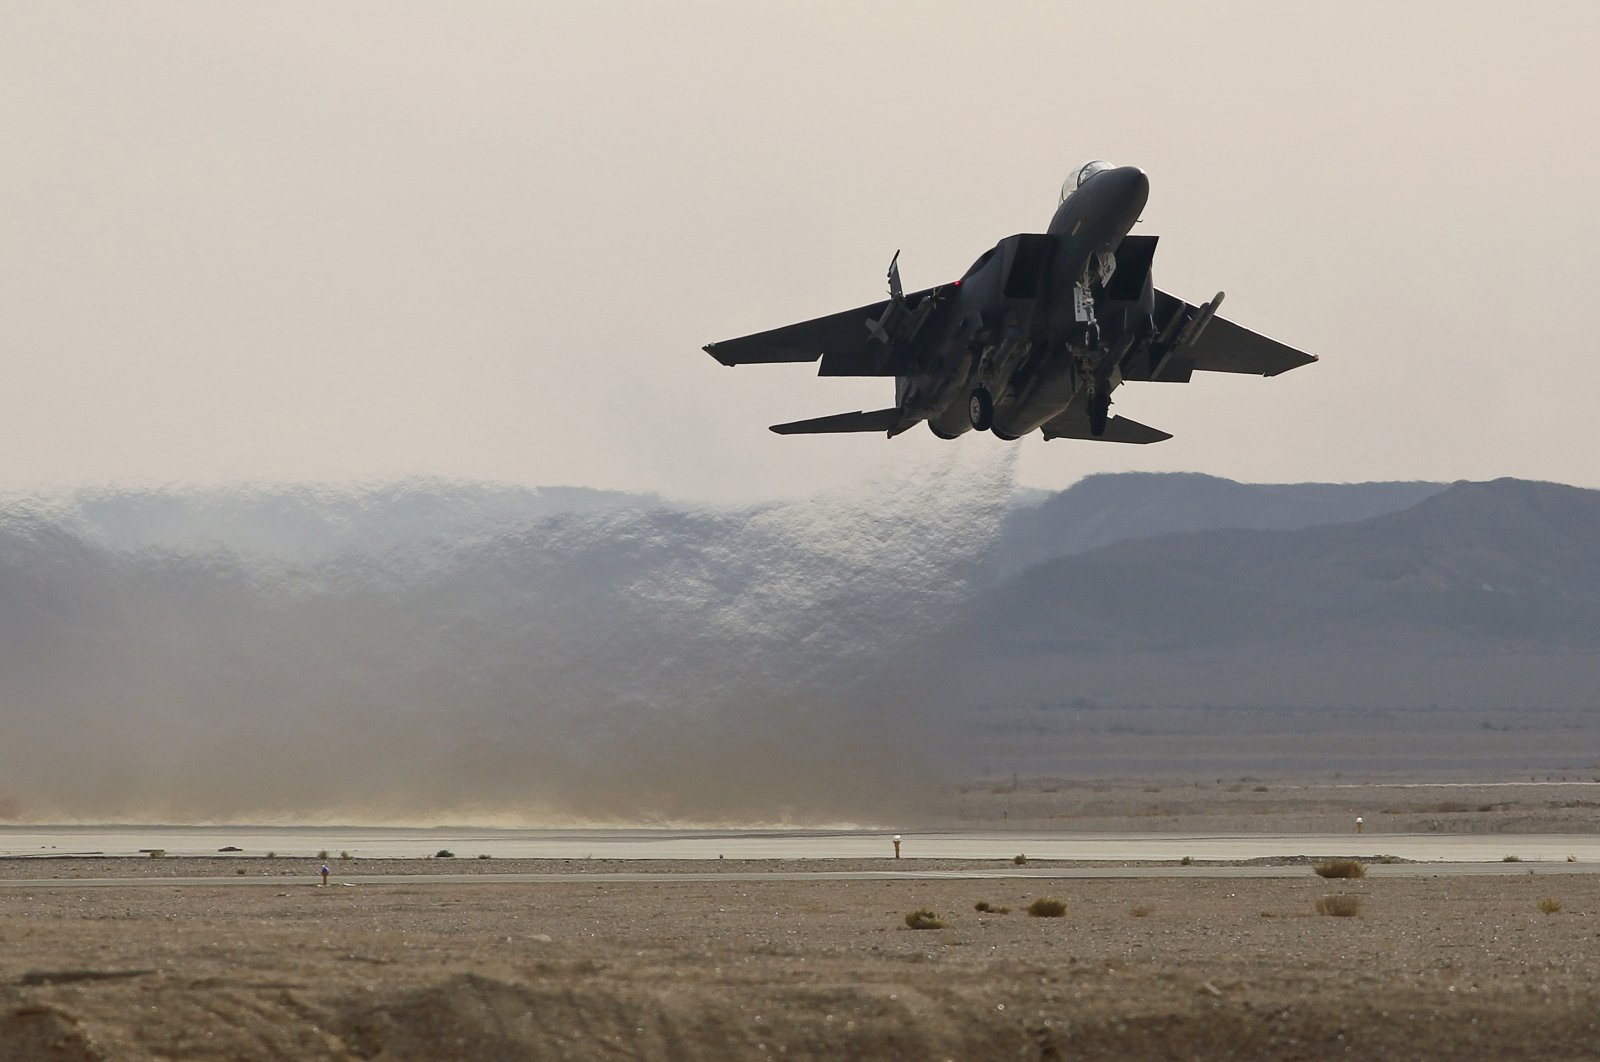 A Greek F-15 BI52 fighter jet takes off from Ovda airbase, some 40 km (25 miles) north of Eilat, during the Blue Flag drill Nov.25, 2013. (Reuters File Photo)